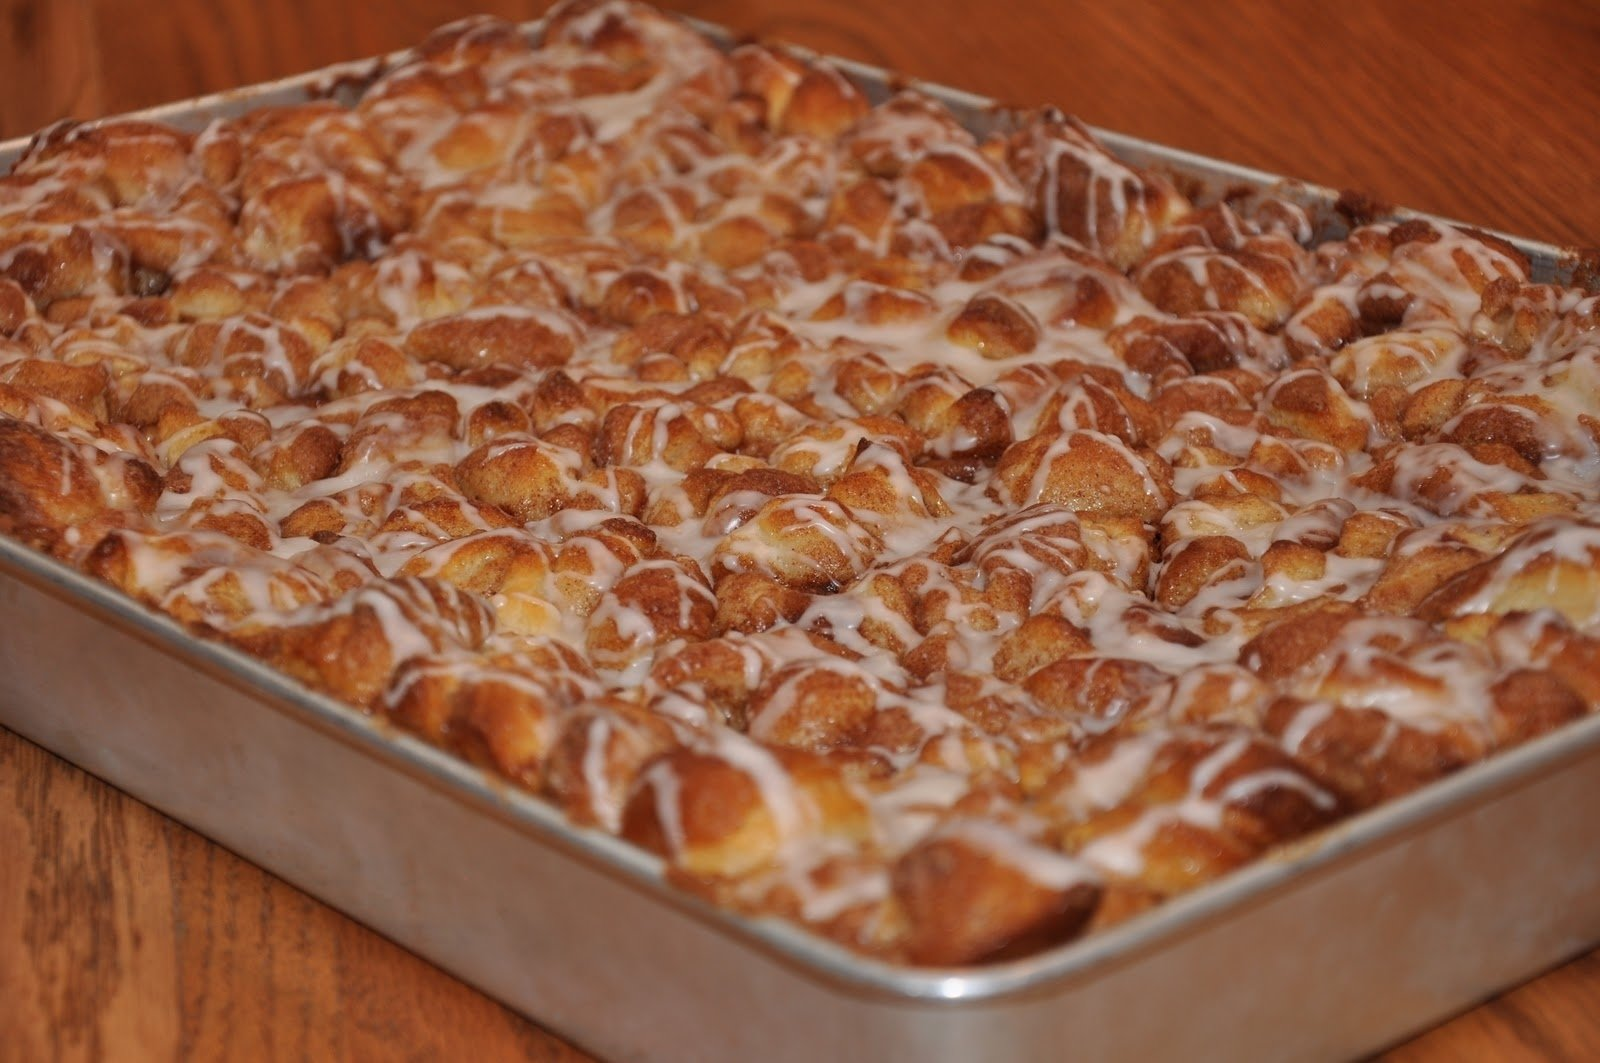 10 Stunning Breakfast Ideas For A Crowd the changeable table crowd size chunky monkey cinnamon pan bread 1 2020